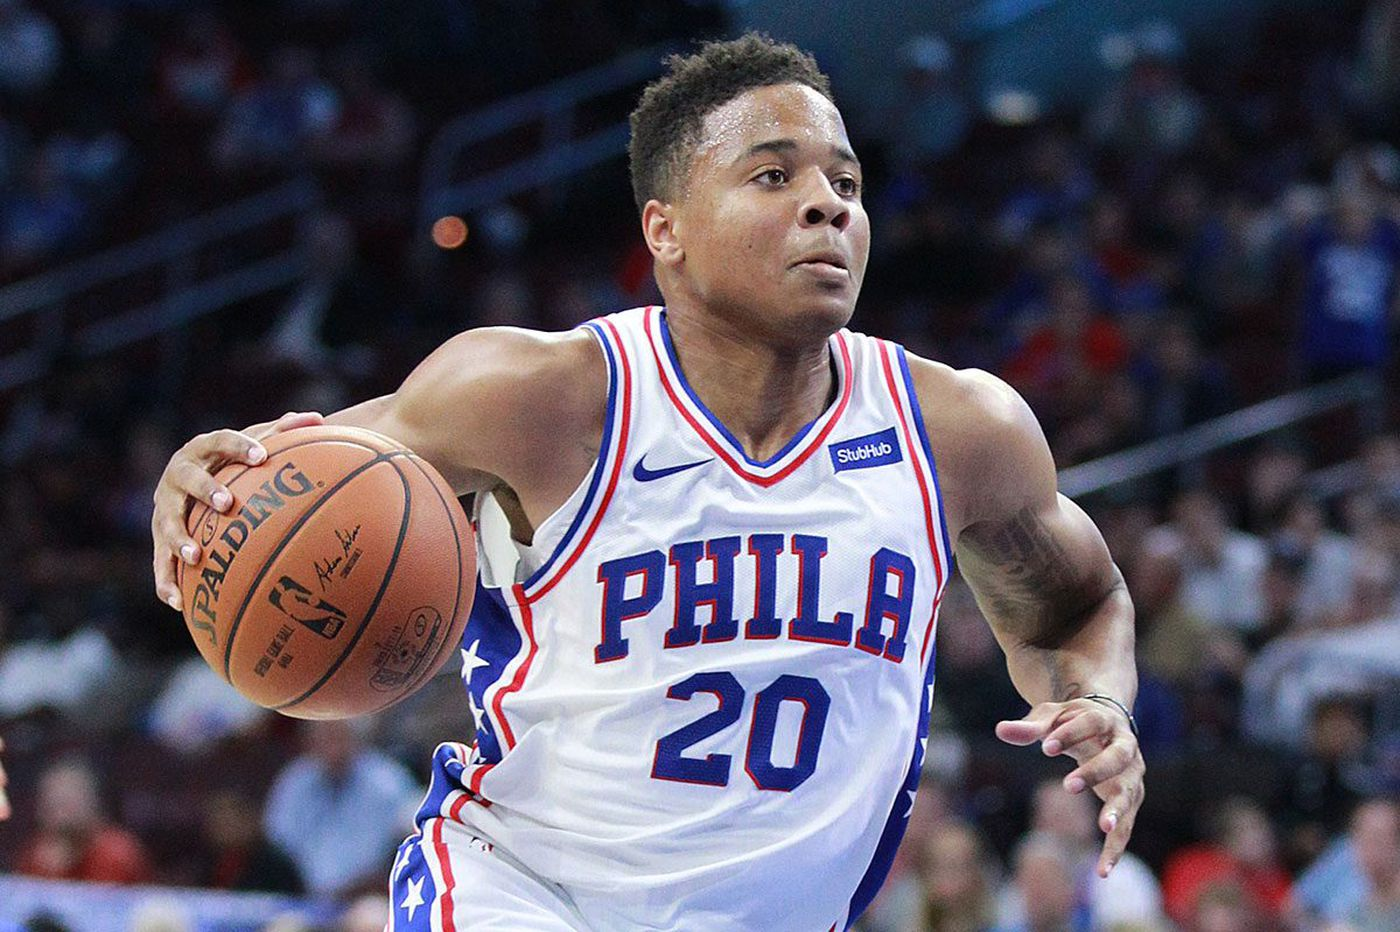 Sixers rookie Markelle Fultz plays 5-on-5 at practice